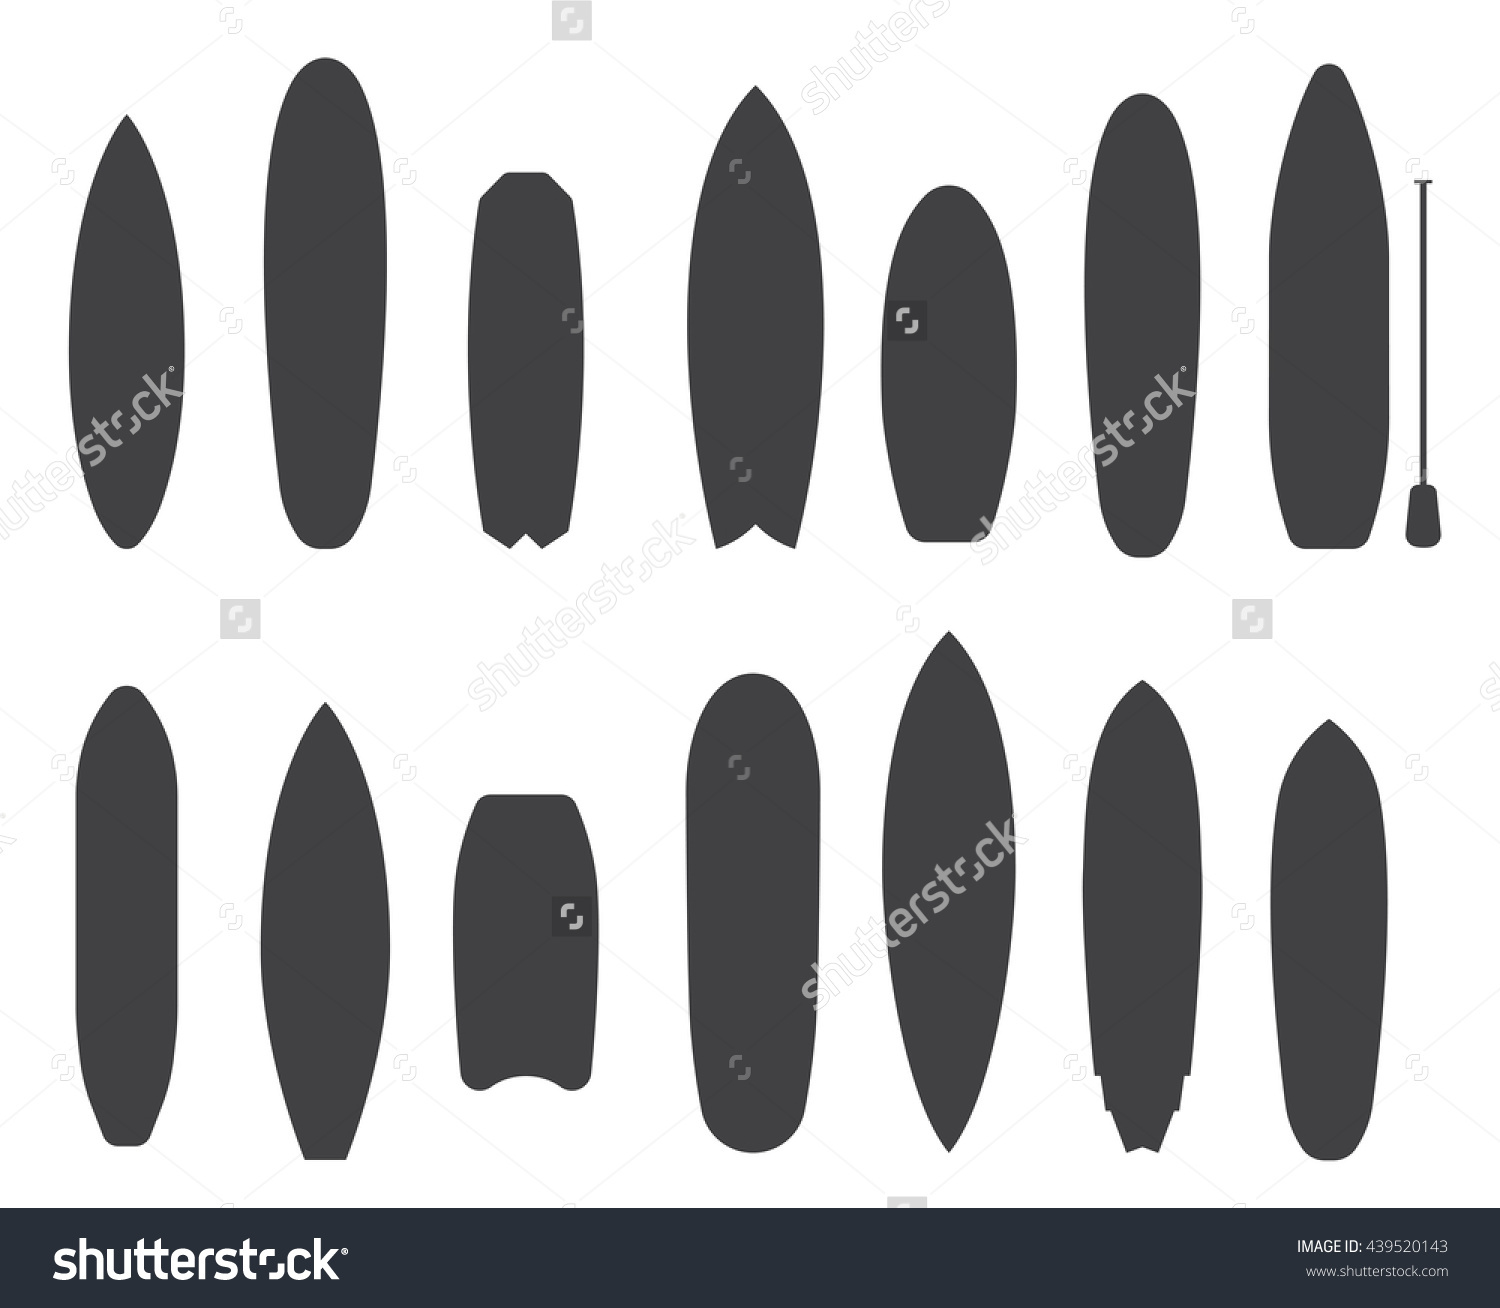 Outline of surfboard clipart vector black and white download Outline Surfboard Collection Flat Design Vector Stock Vector ... vector black and white download